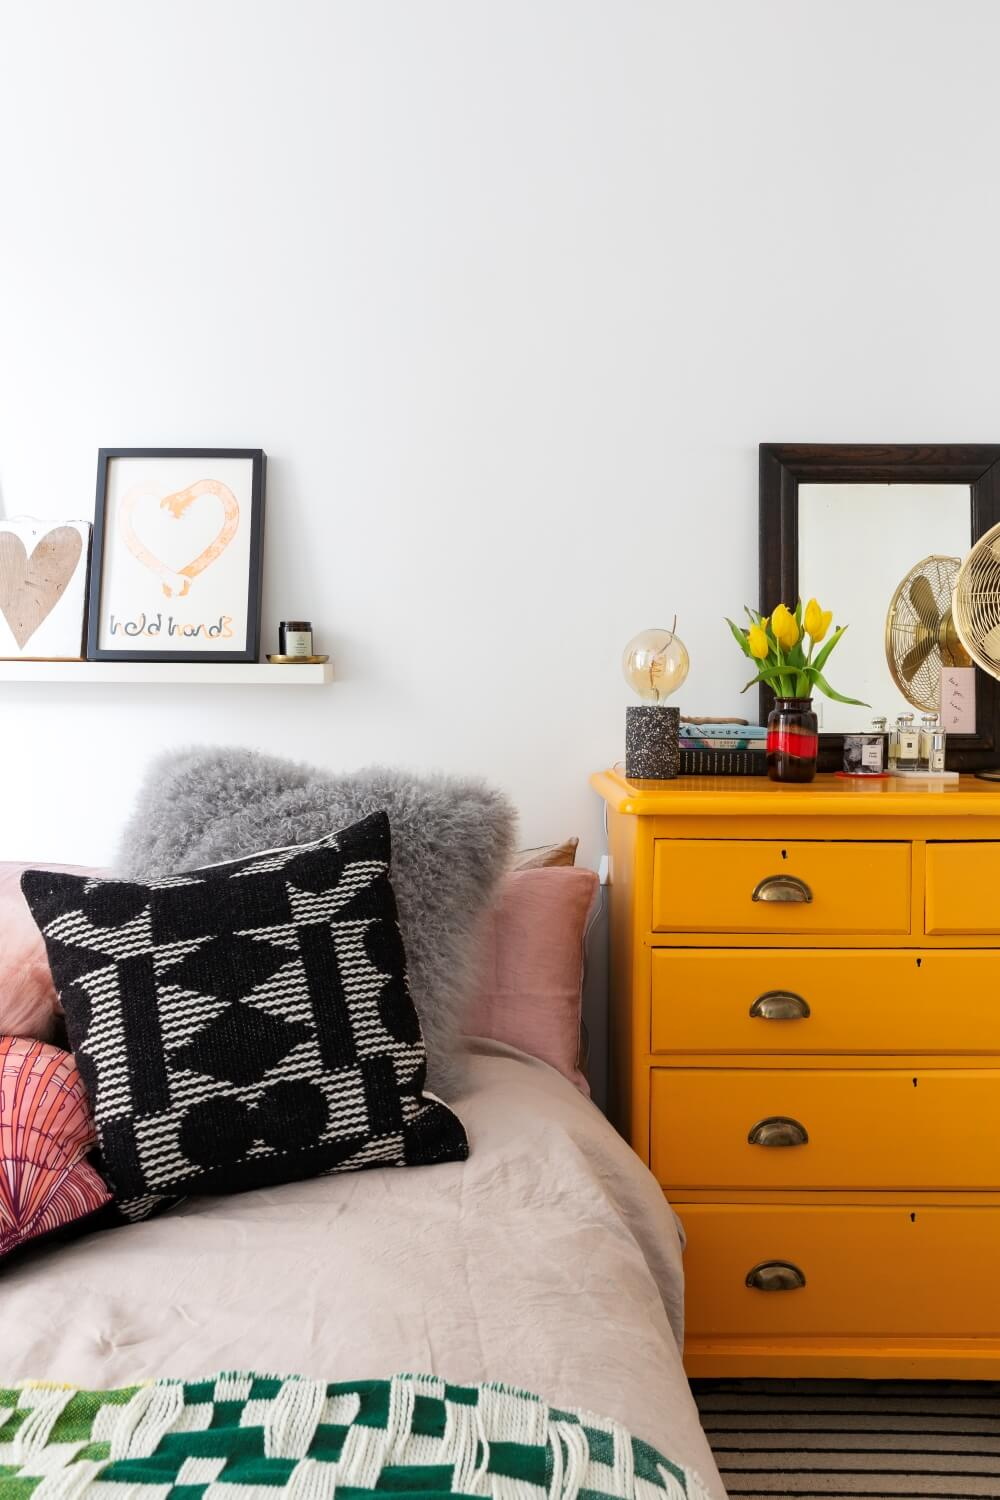 Painted yellow chest of drawers next to bed in the bedroom